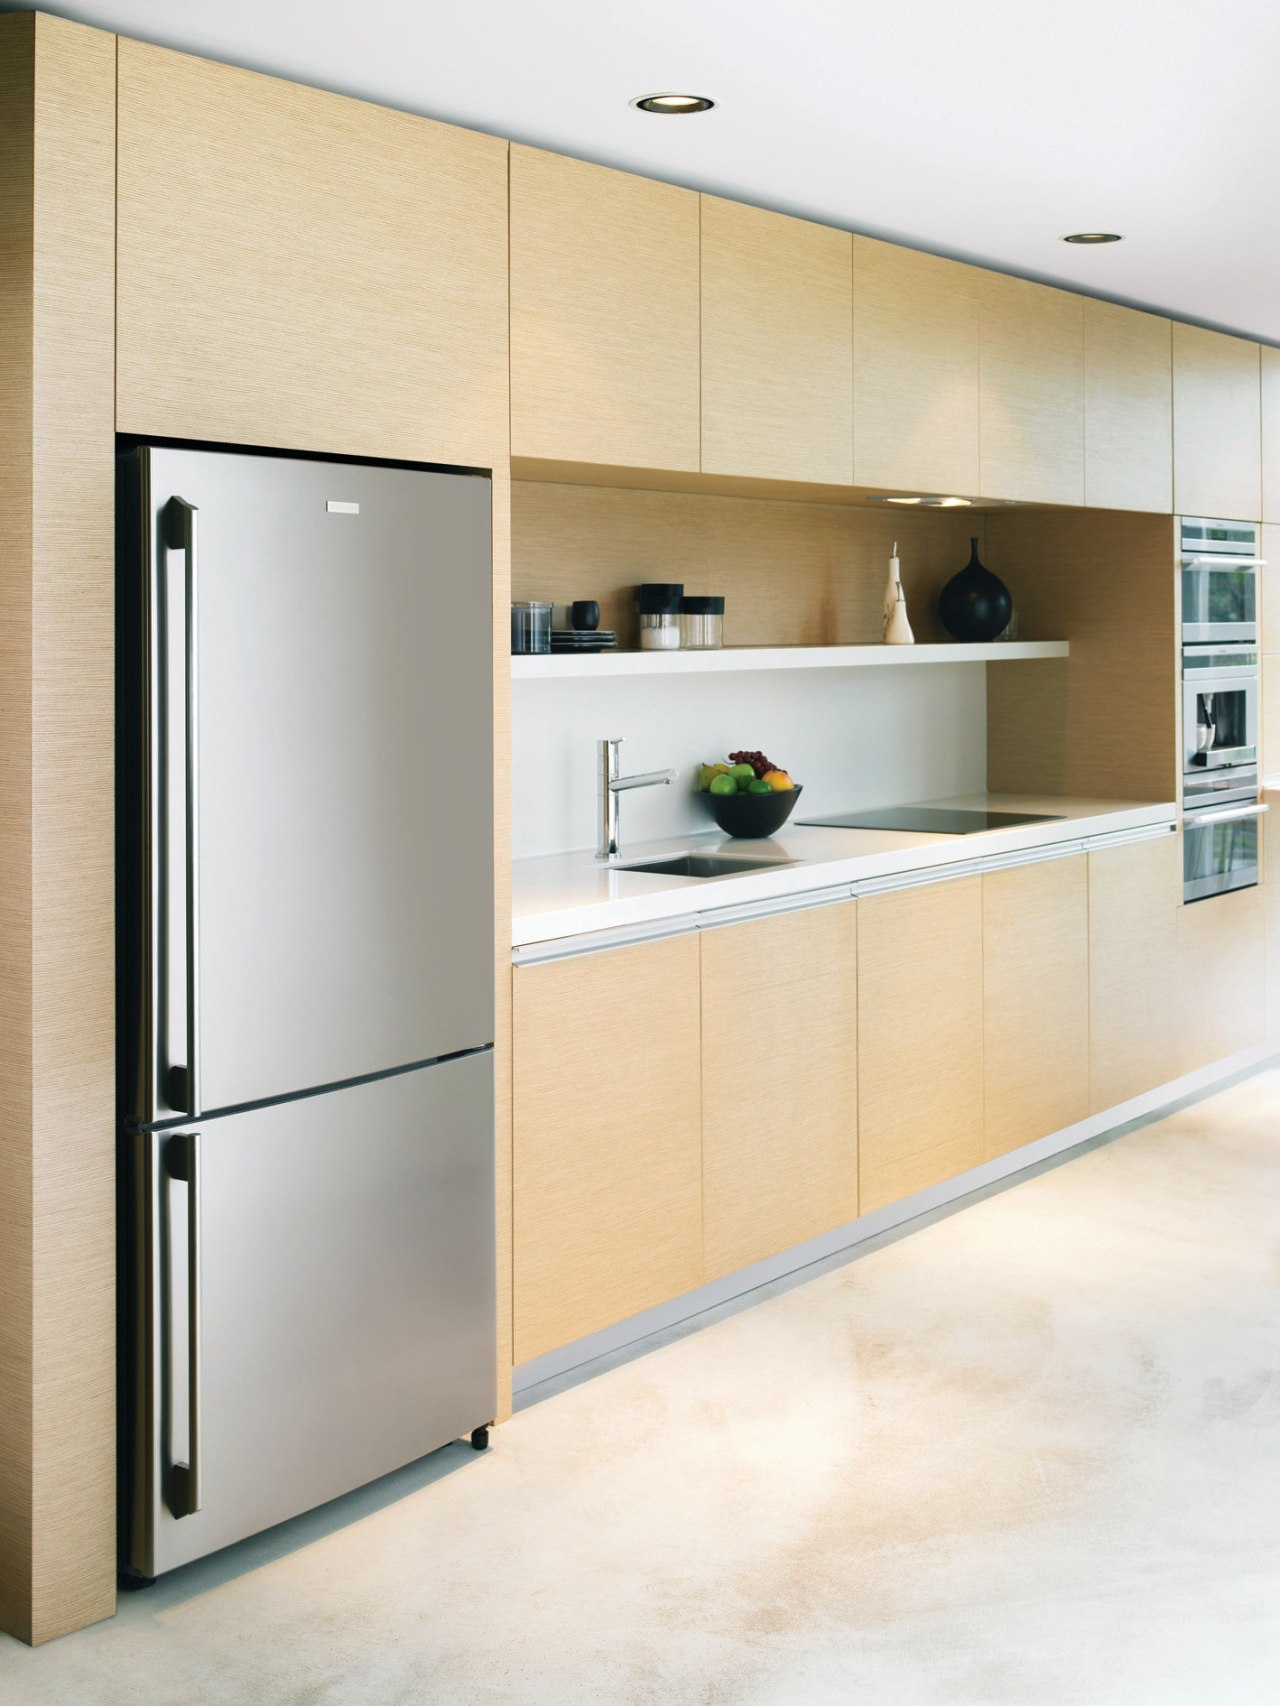 These Electrolux E:Line refridgerators are sleek, spacious and cabinetry, home appliance, interior design, kitchen, major appliance, product design, refrigerator, white